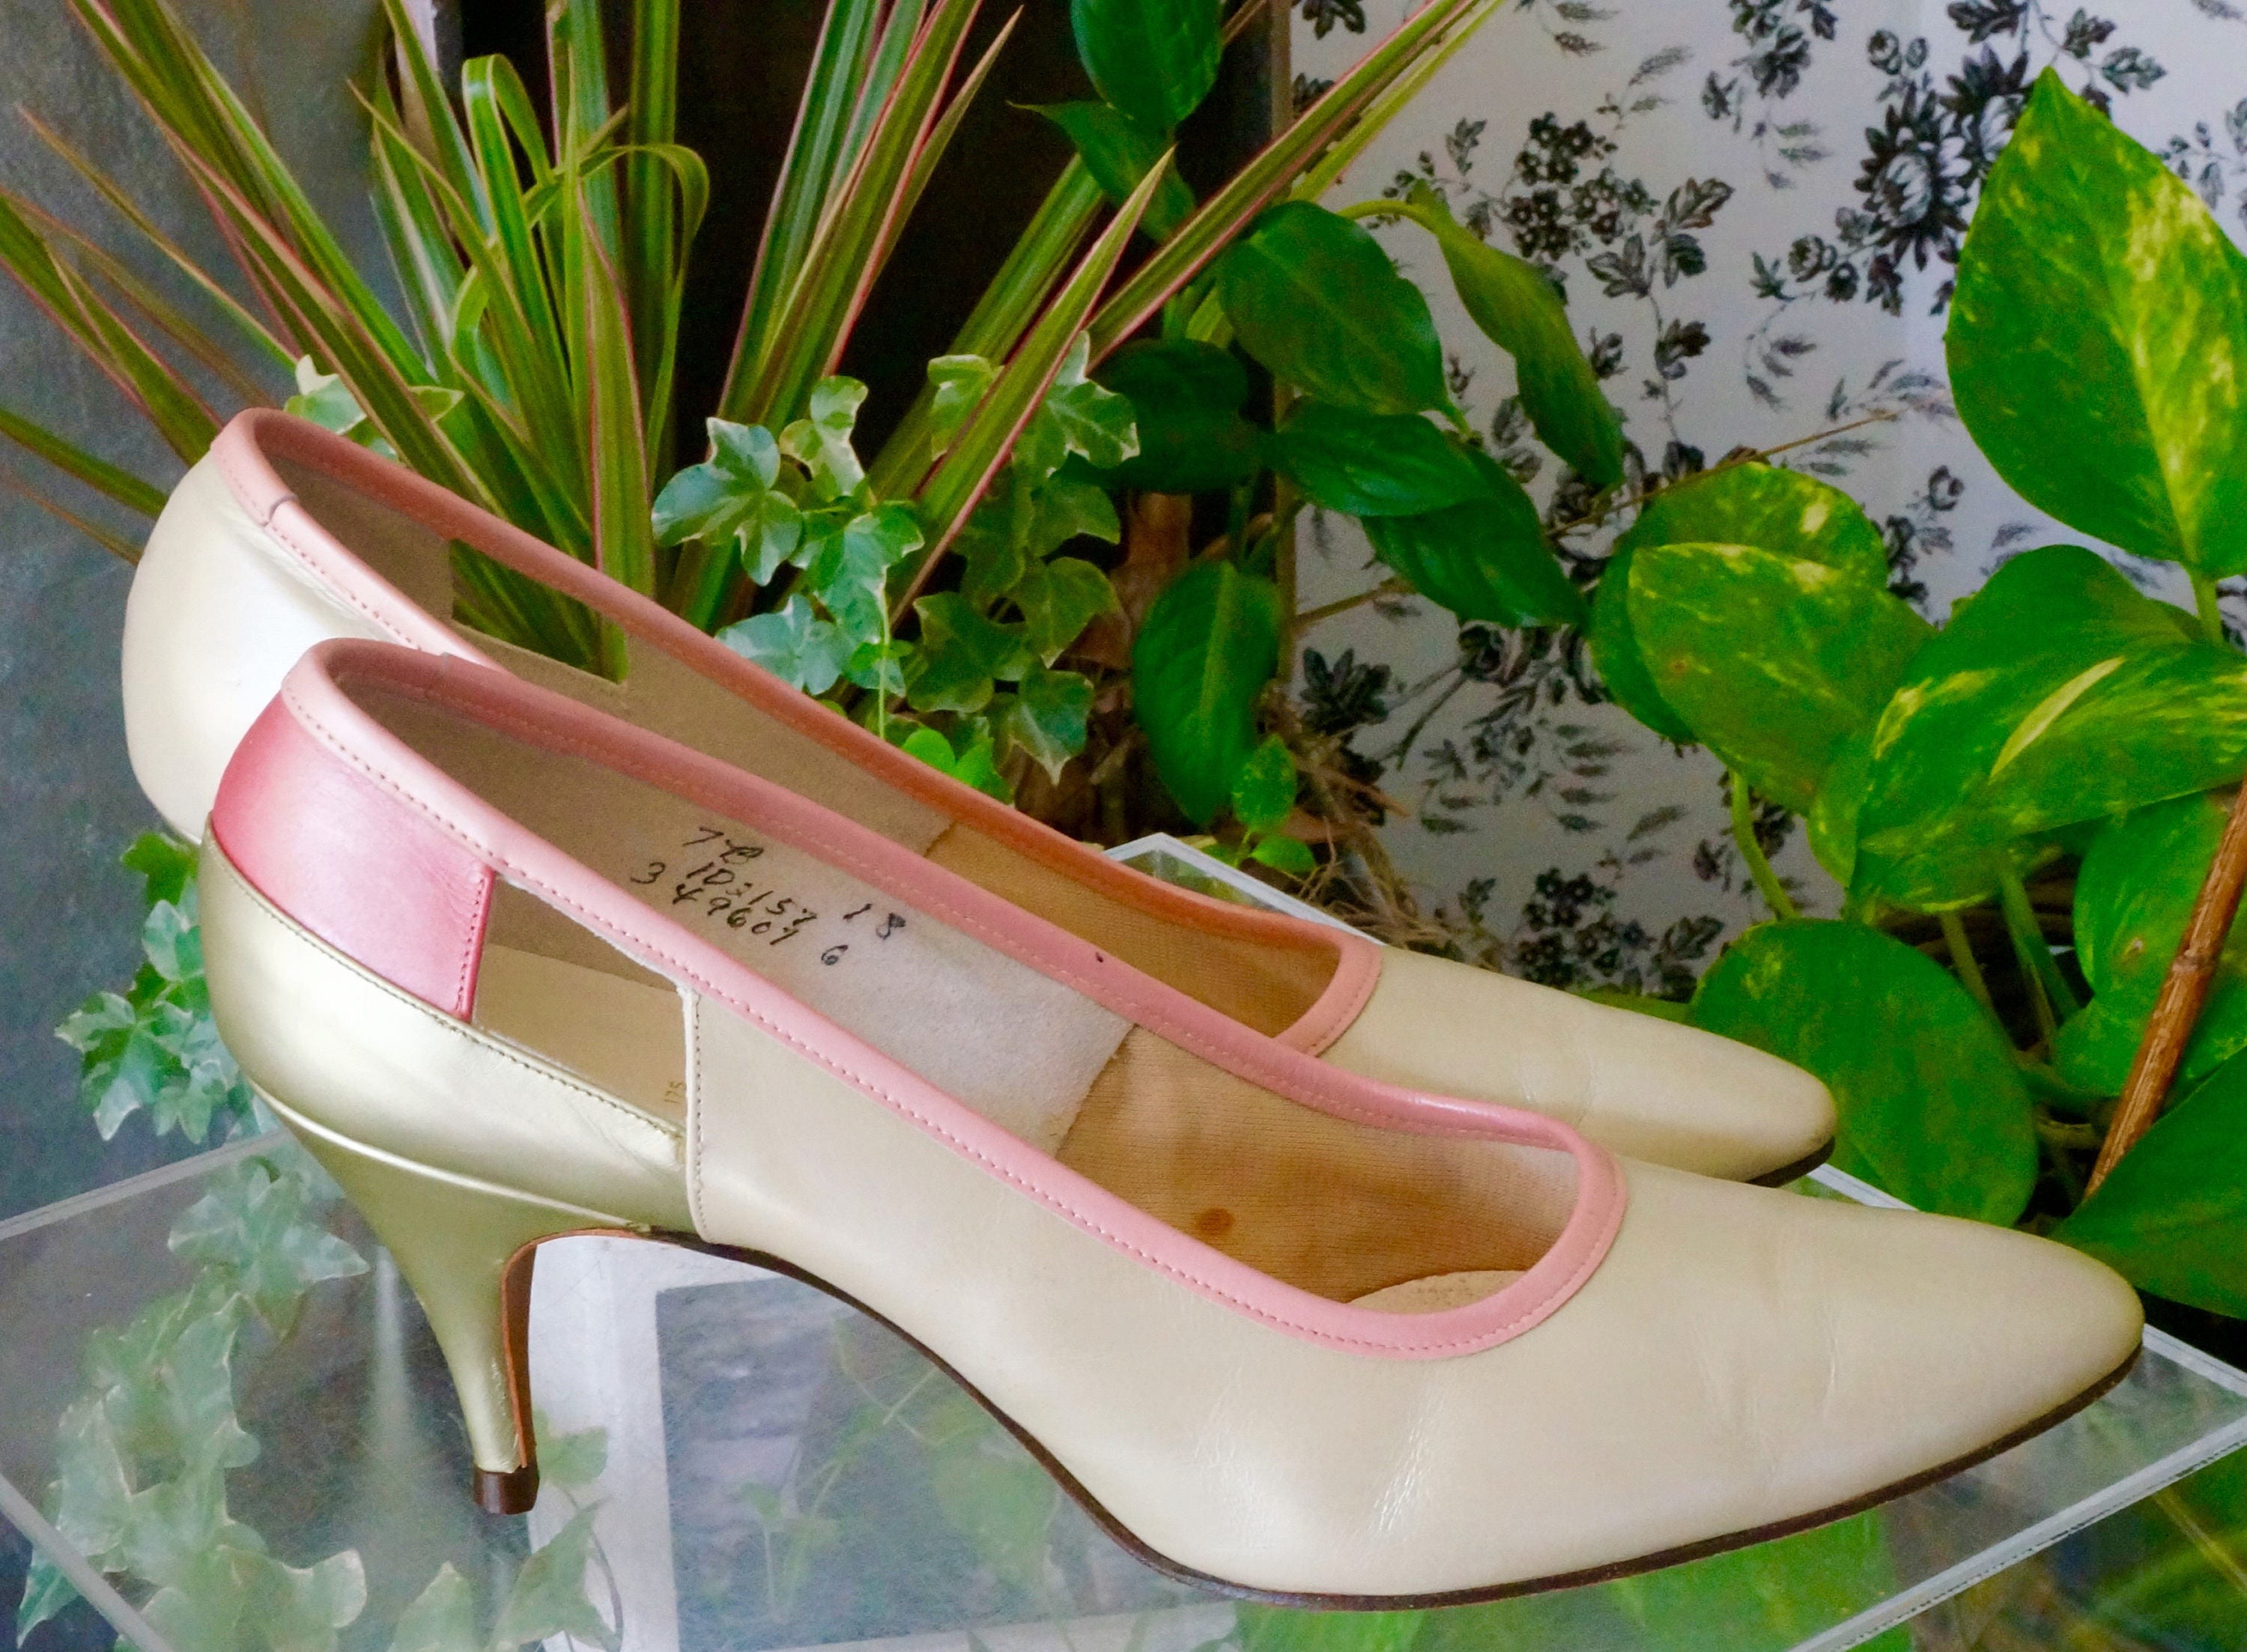 9ae17b4d9a Free Shipping! Vtg. VALLEY Pumps in Taupe Green and Pink - Size 7